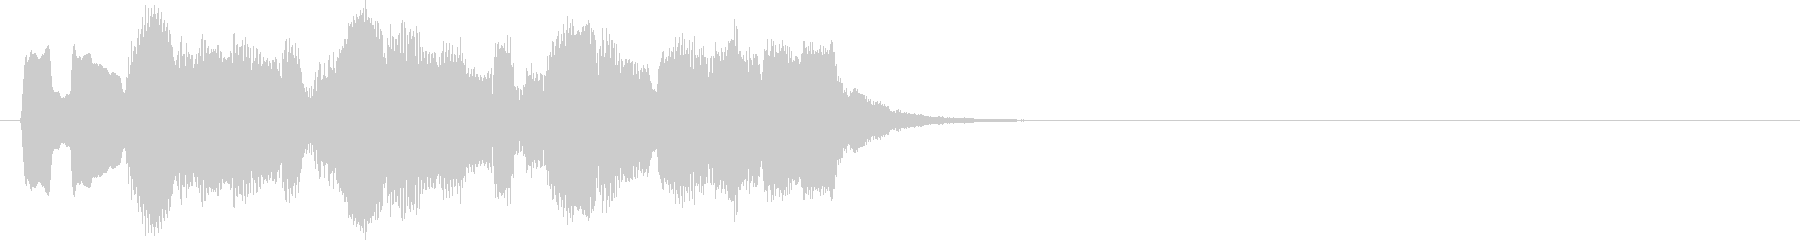 This is a short tune of a joy song.'s unreproduced waveform